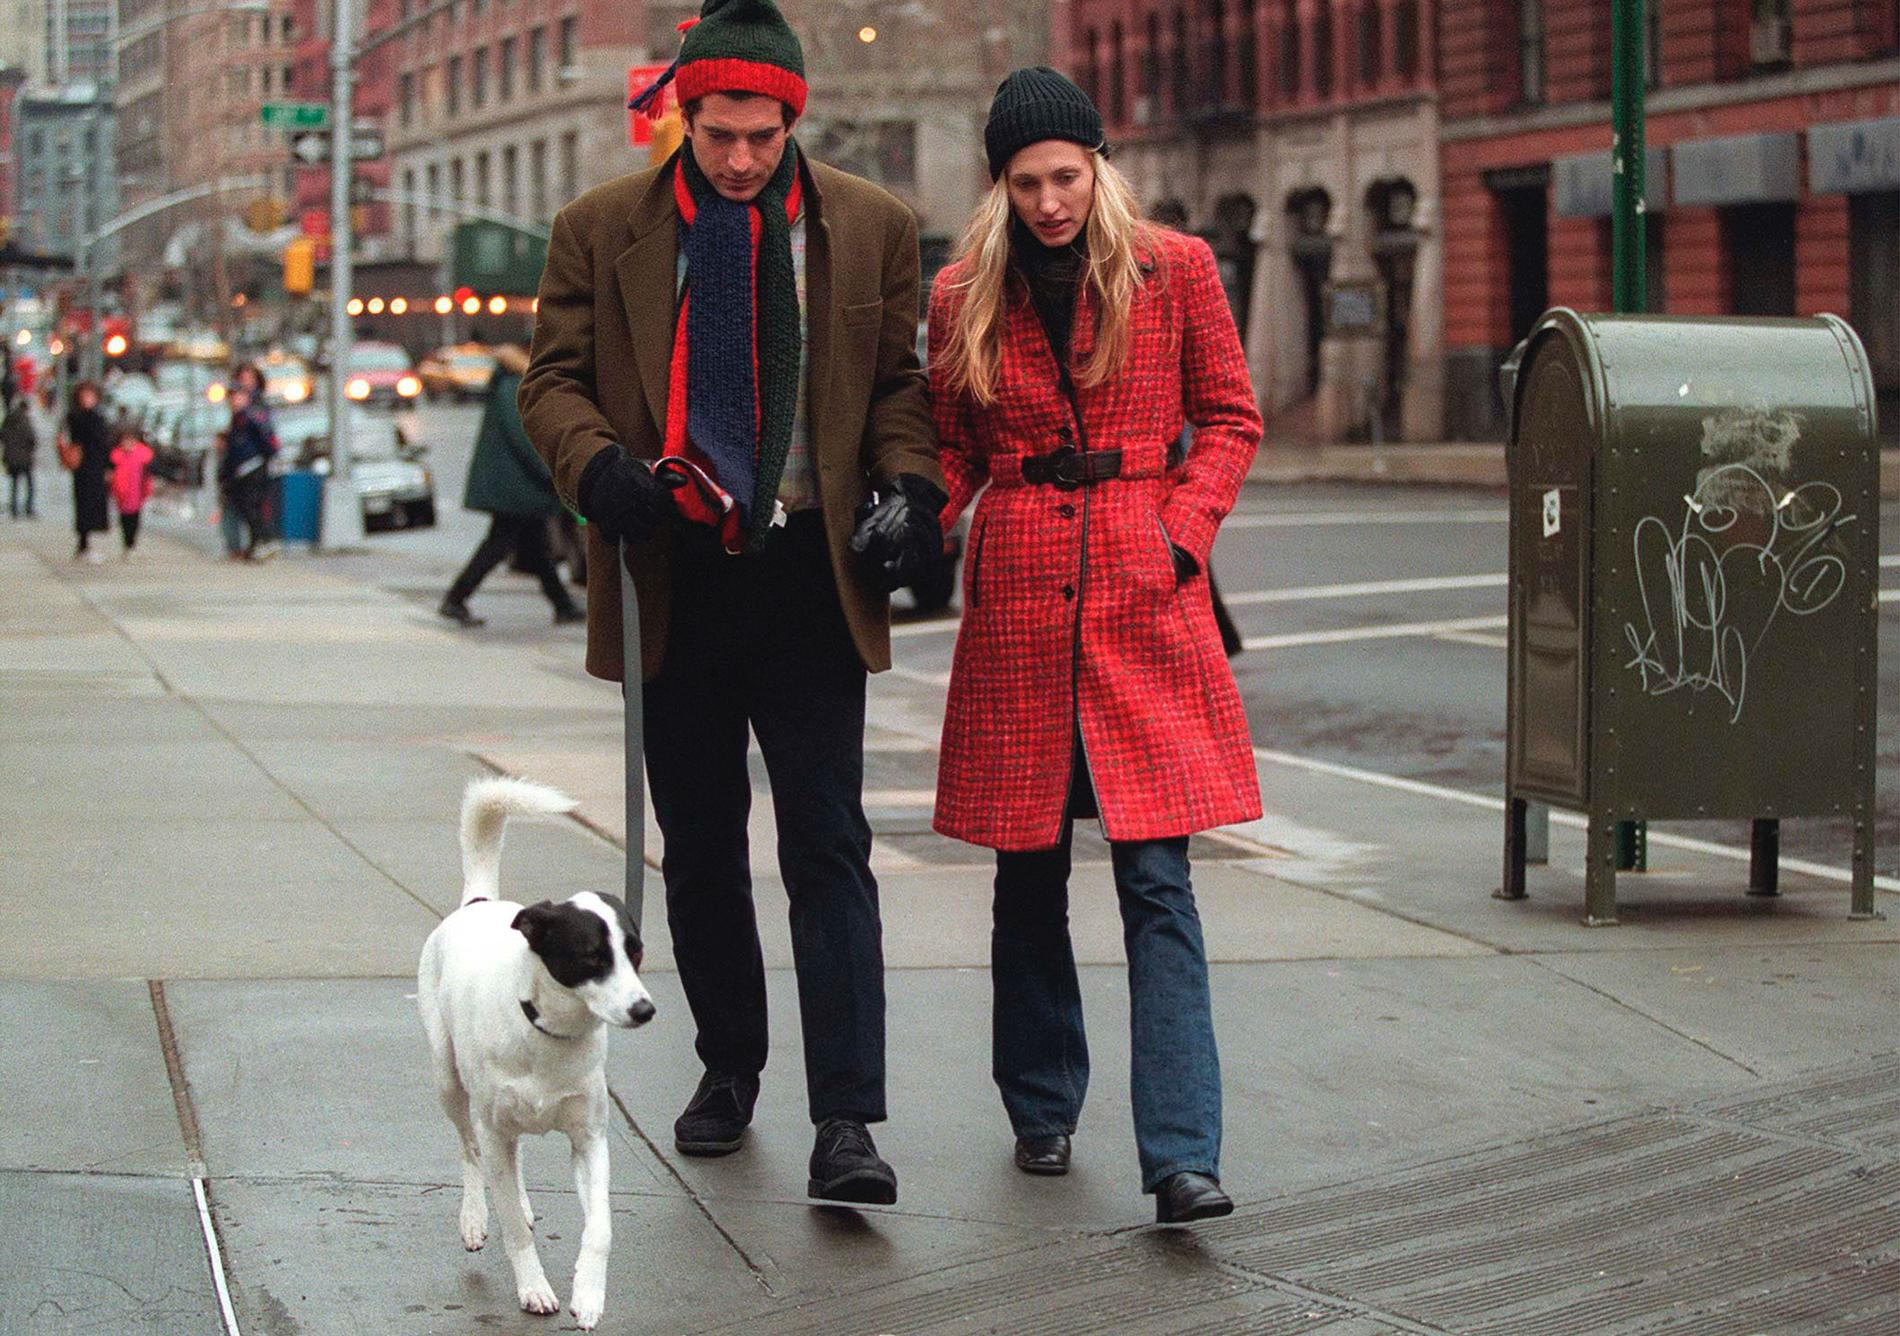 292061 08: (MAGAZINES PLEASE CALL) John F. Kennedy Jr. and his wife Carolyn walk with their dog January 1, 1997 in New York City. July 16, 2000 marks the one-year anniversary of the plane crash off the coast of Martha's Vineyard in Massachusetts that killed John F. Kennedy Jr., 38, his wife Carolyn Bessette Kennedy, 33, and her sister Lauren Bessette, 34. (Photo by Evan Agostini/Liaison)